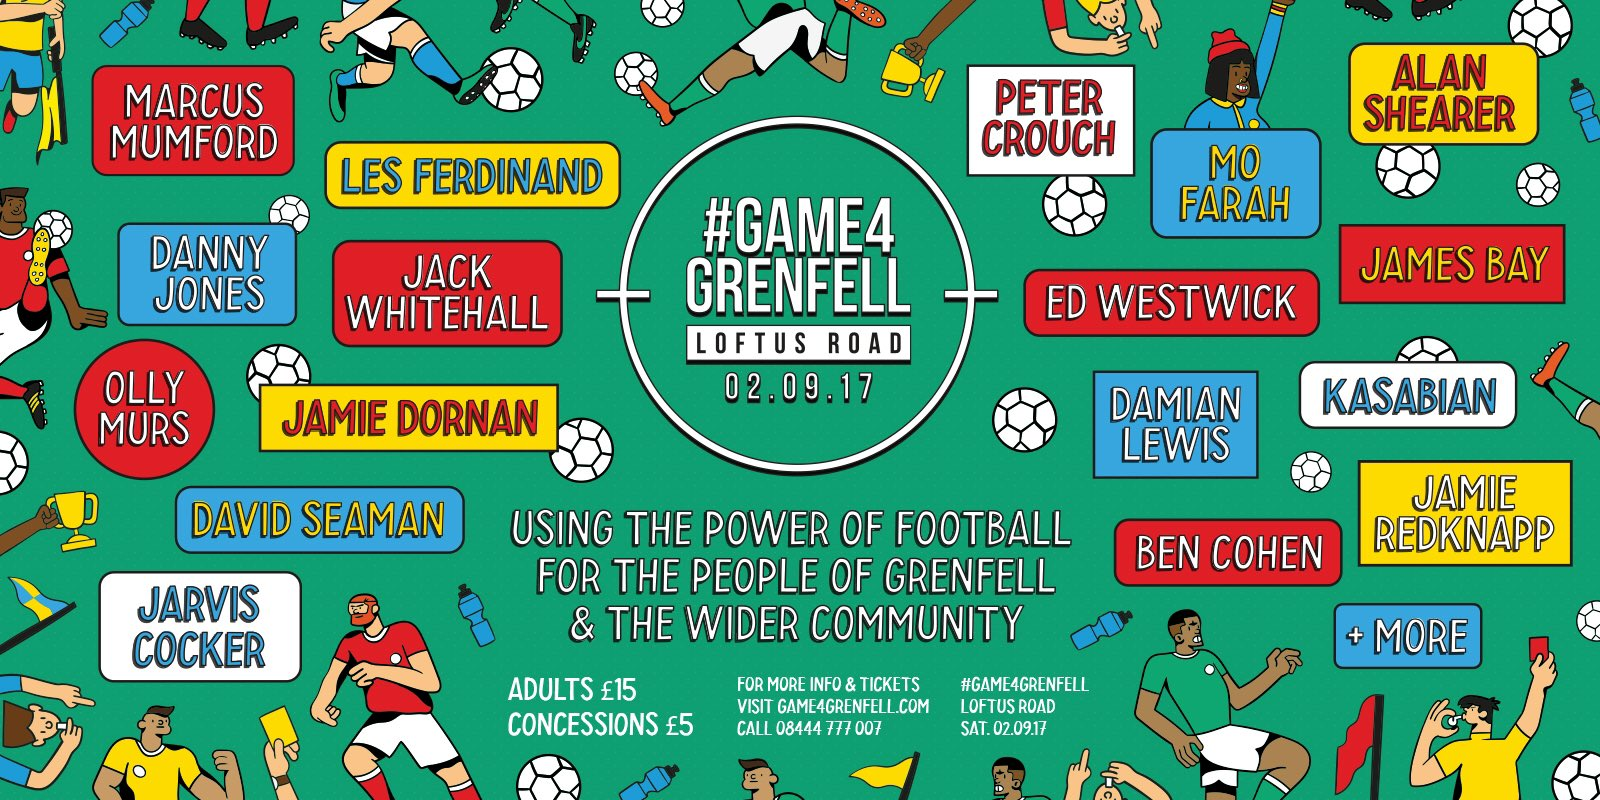 RT @QPRFC: 💚 This lot have signed up for a #Game4Grenfell. Have you?  Get your ticket from https://t.co/VDjHyW54SN! https://t.co/XgE5M8WFEr